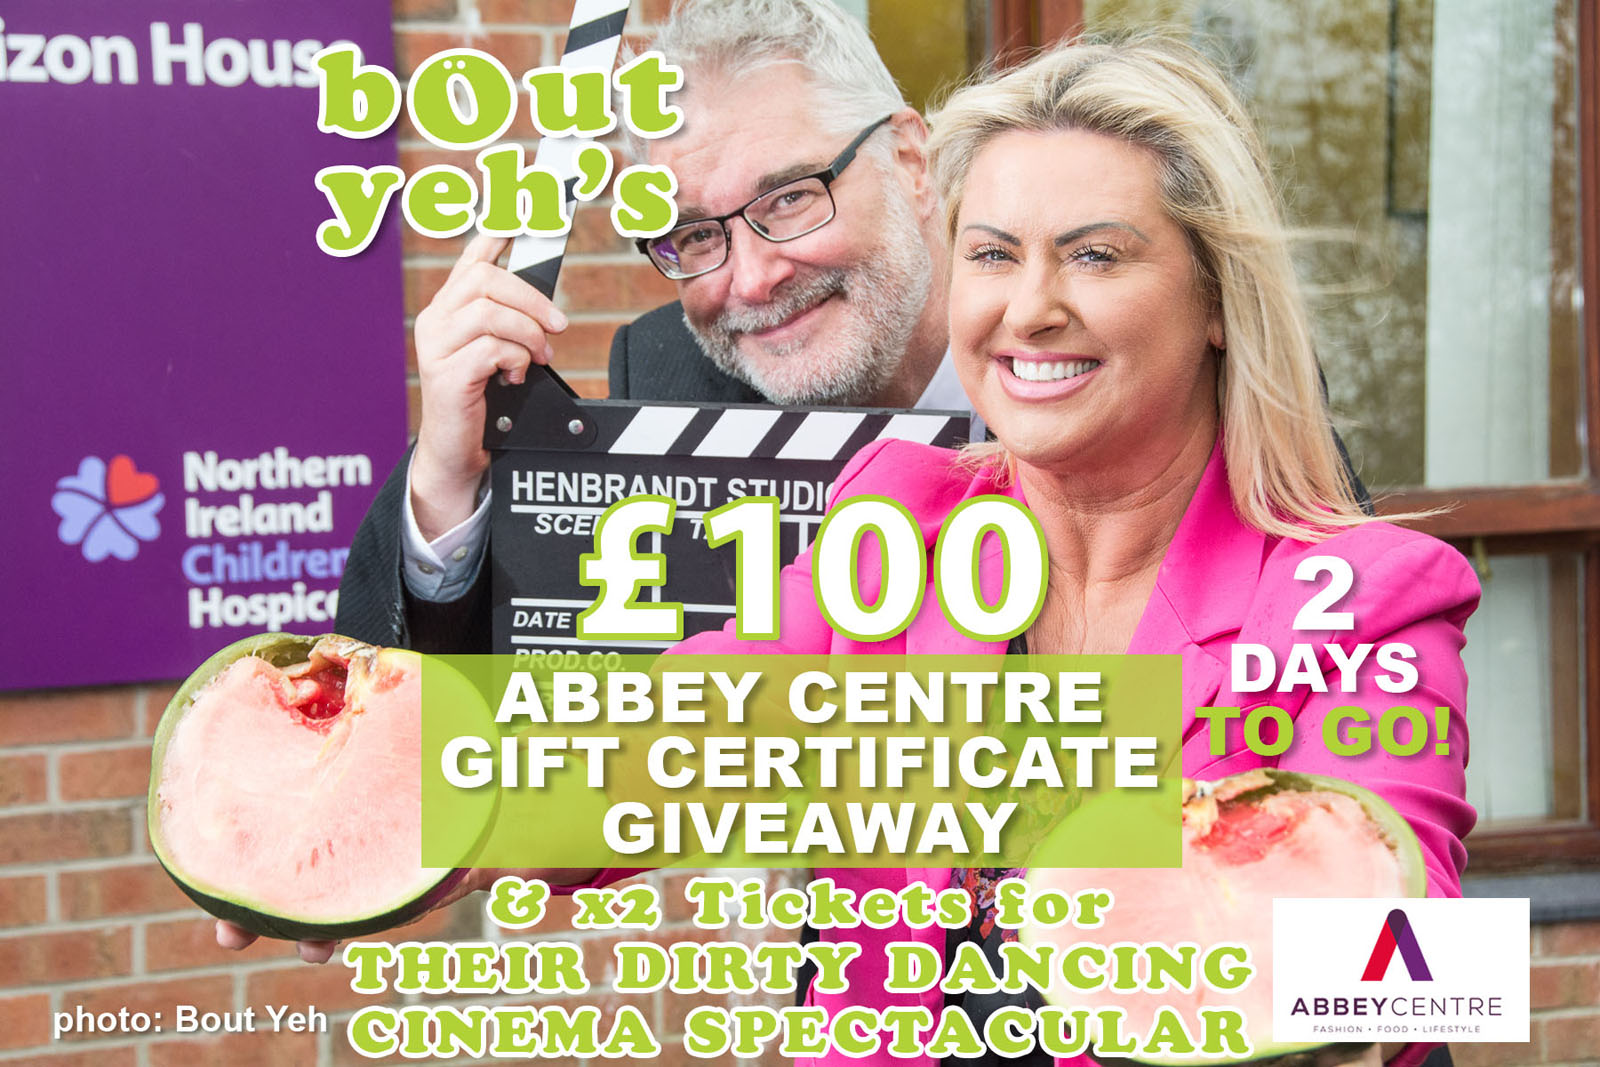 Social Media Marketing Consultants Belfast - Abbey Centre campaign photo 1853. Photo by Bout Yeh used in a Social Media Marketing campaign across Bout Yeh's Social Media platforms for Abbey Centre Northern Ireland.